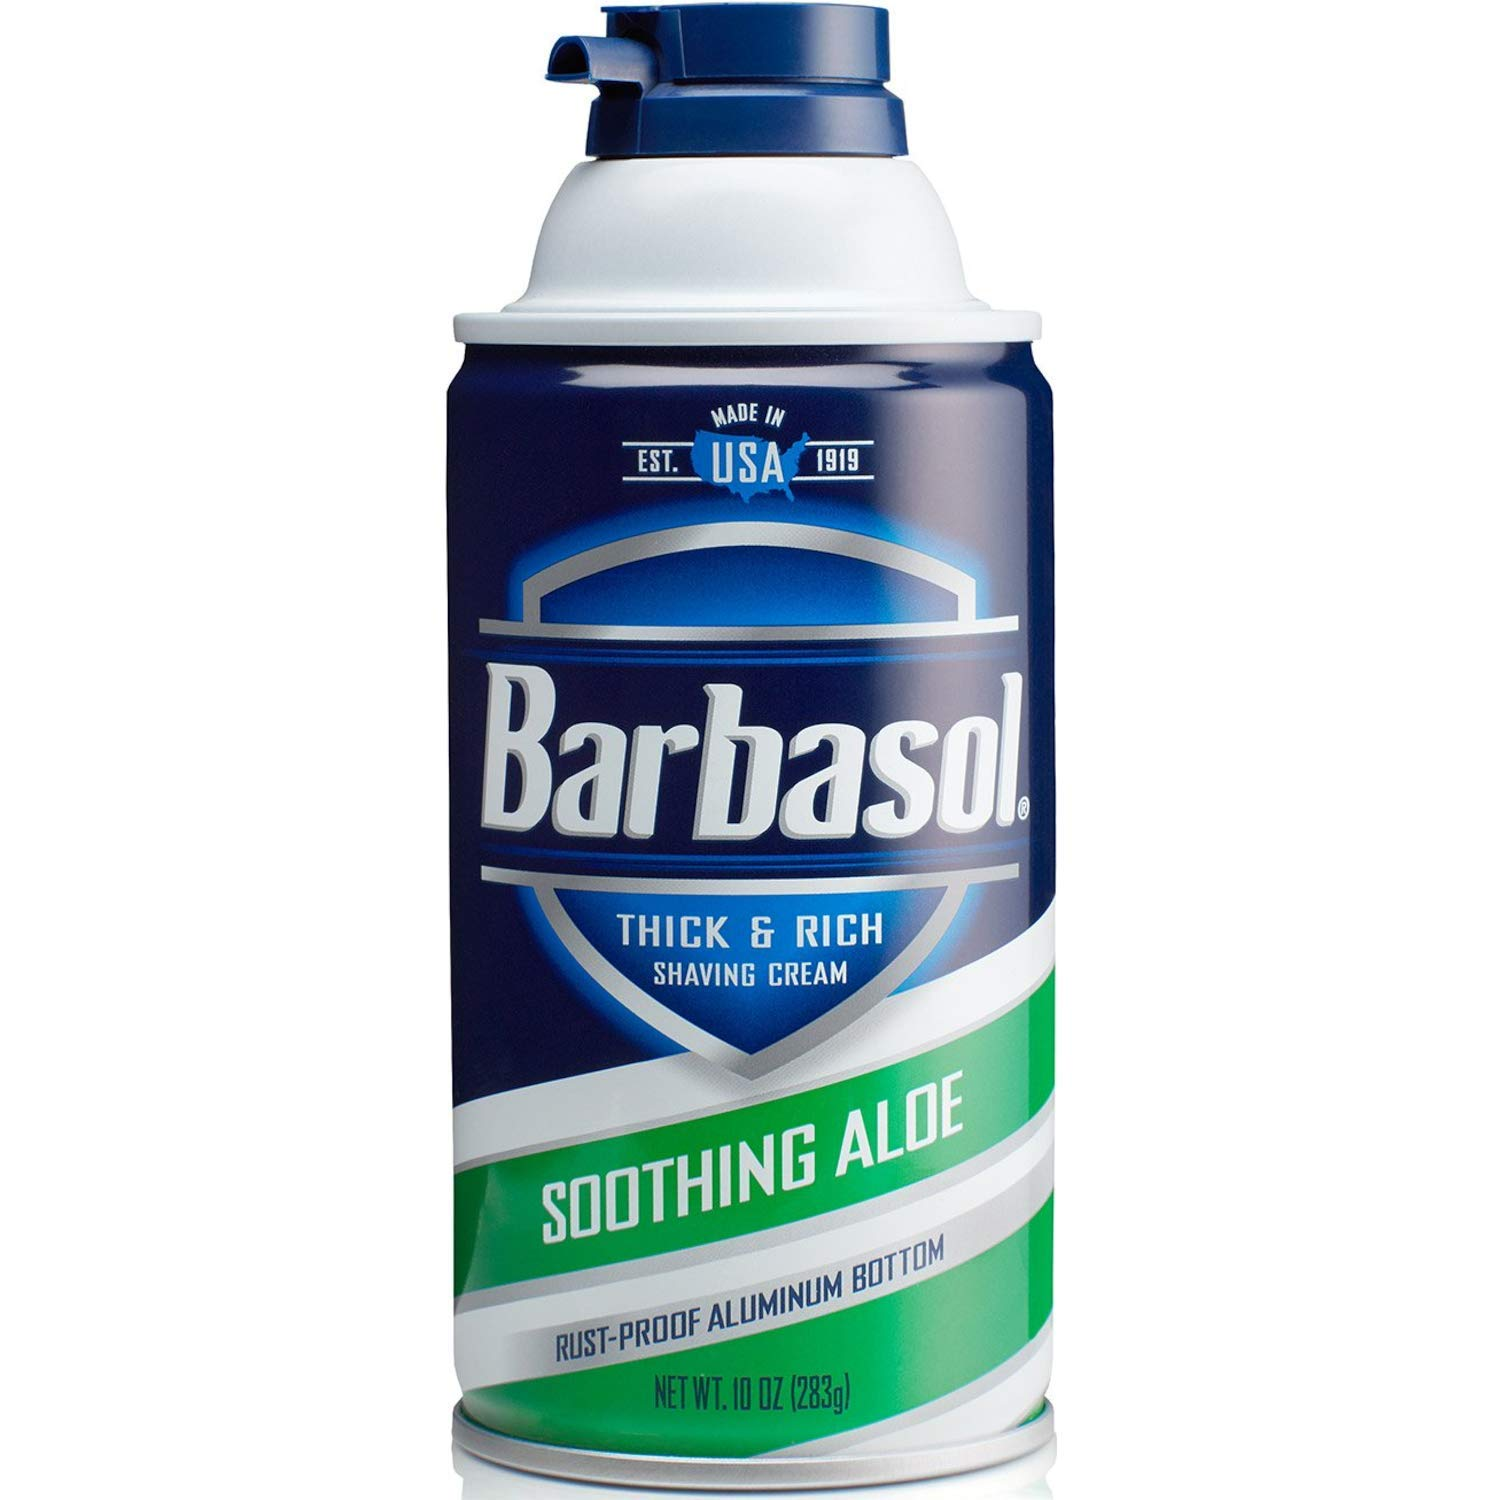 Barbasol Soothing Aloe Thick & Rich Shaving Cream 10 Oz (2 Pack)